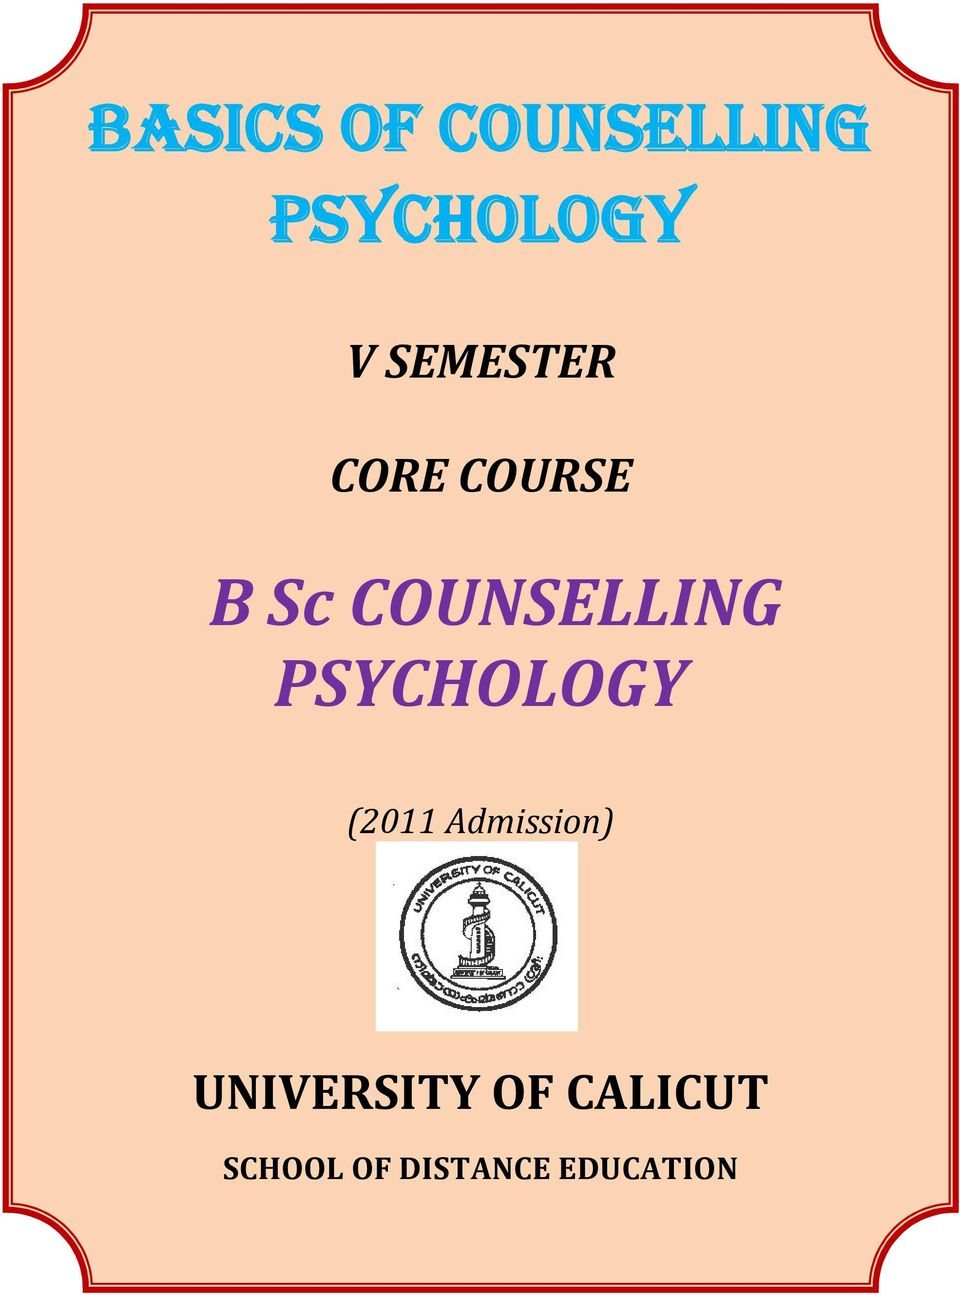 UNIVERSITY OF CALICUT SCHOOL OF DISTANCE EDUCATION